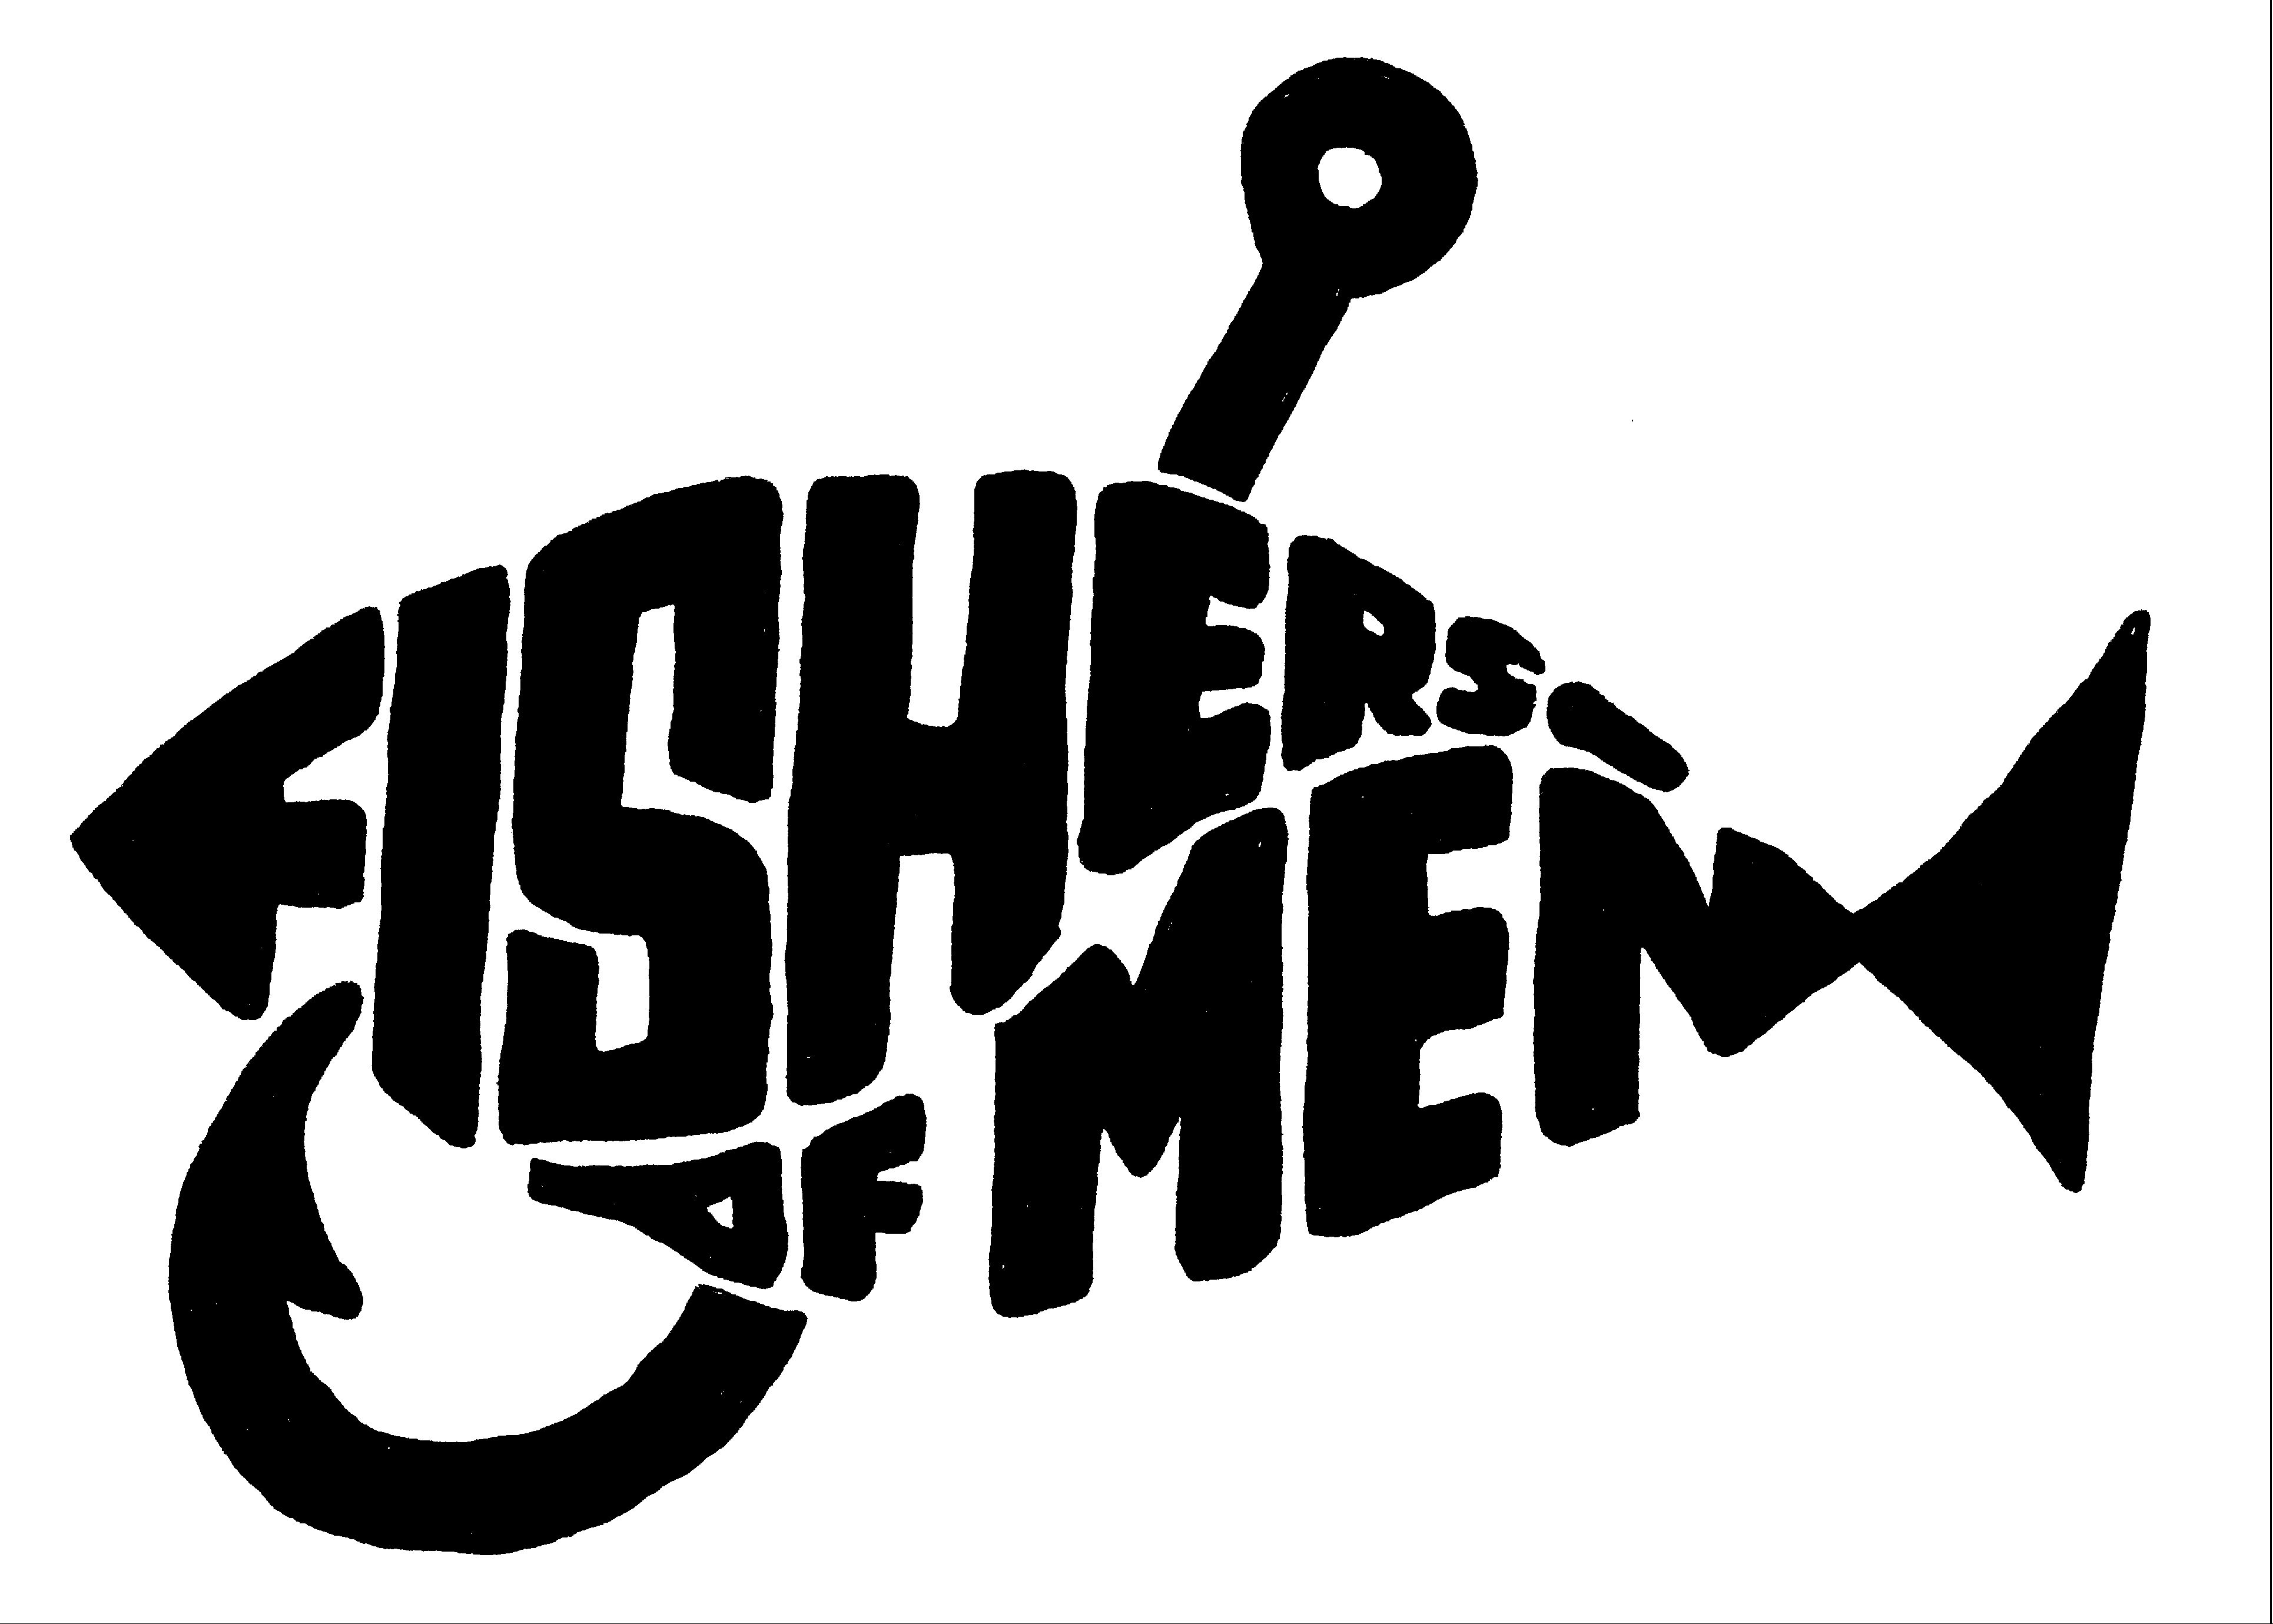 Free christian fishers of men clipart.